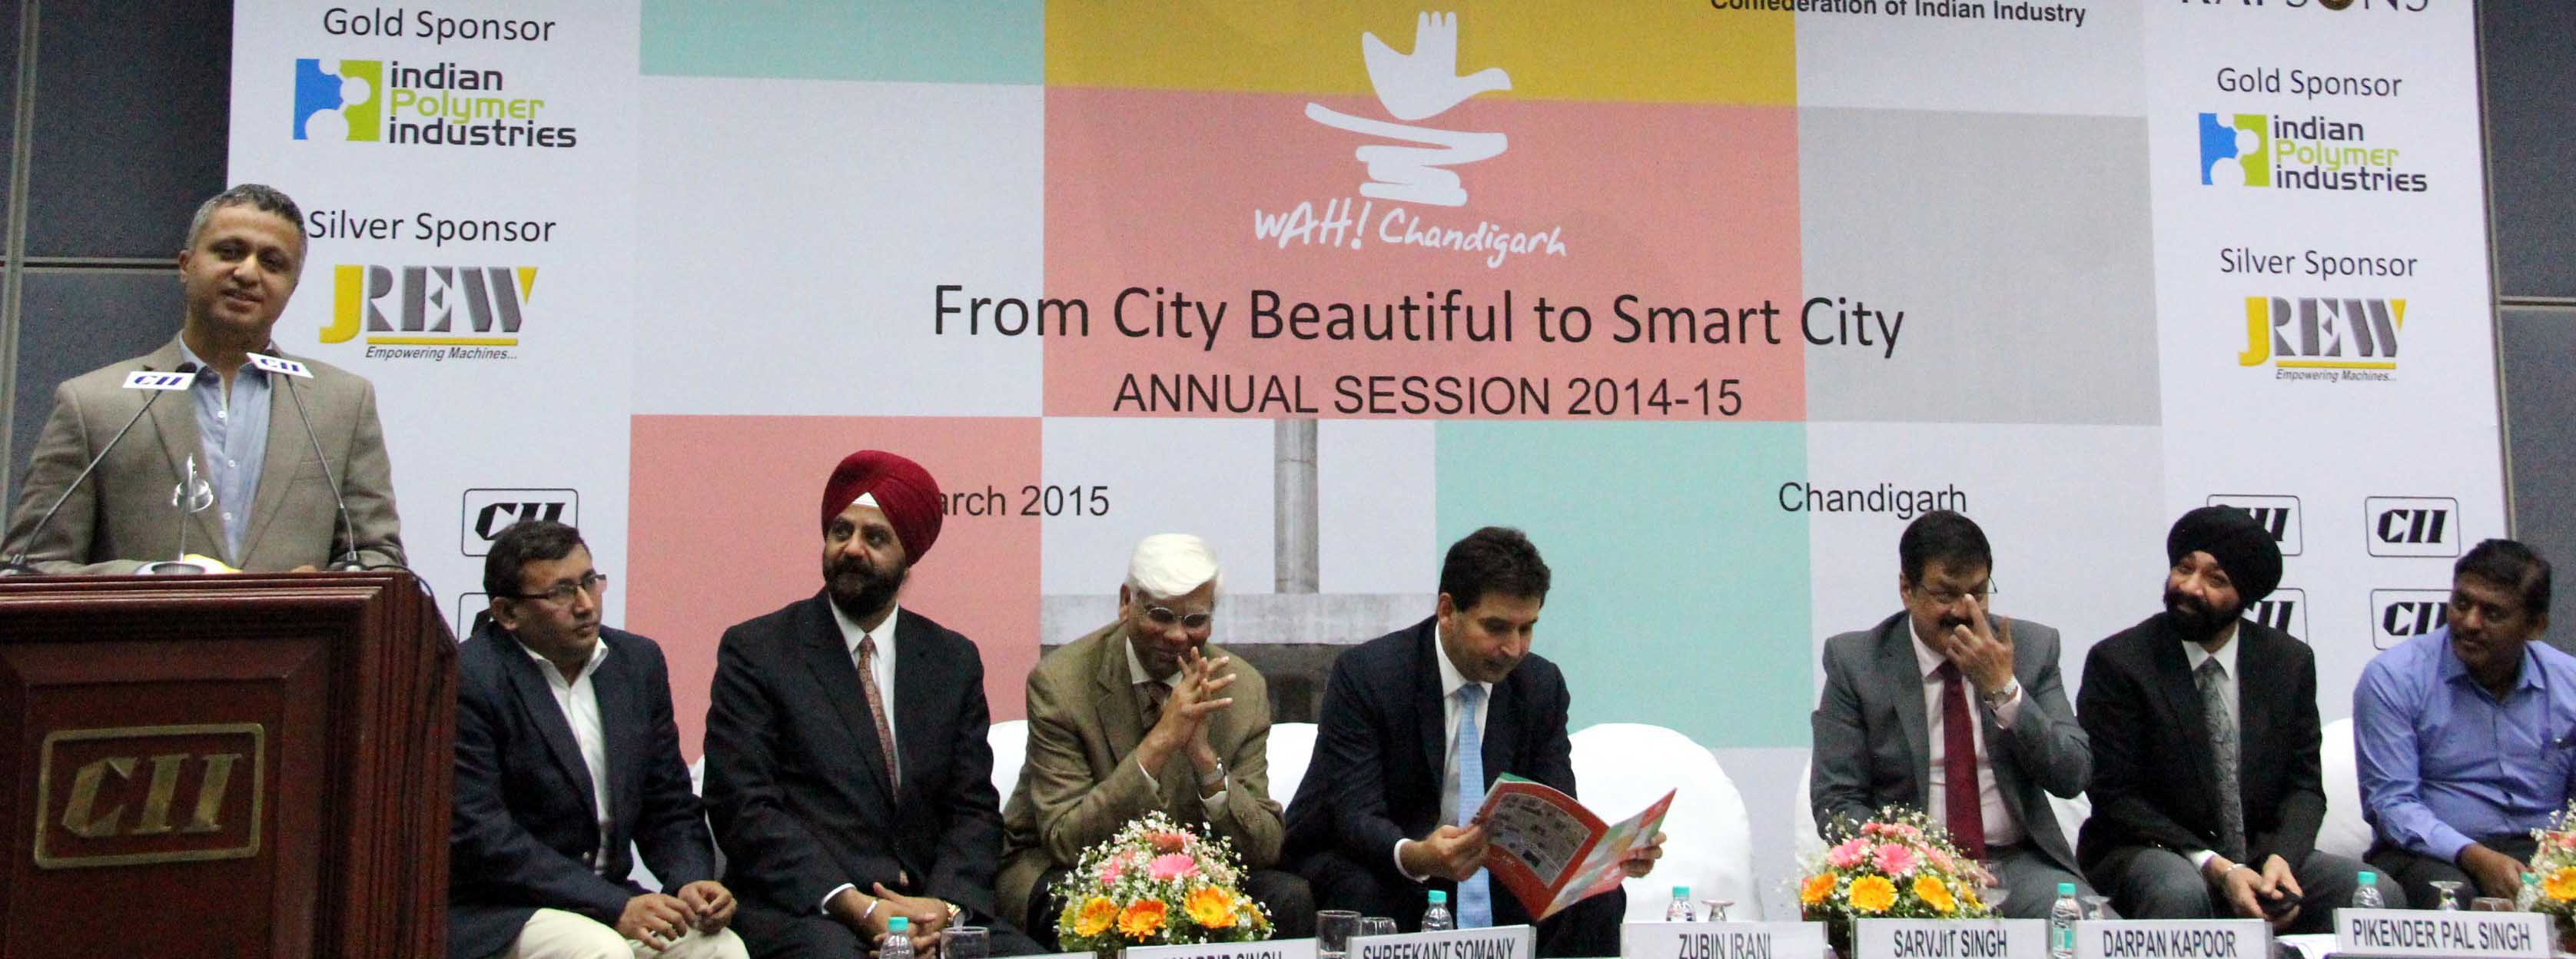 UT Finance Secretary, Mr. Sarvjit Singh addressing the audience in the Session on WAH! Chandigarh: from City Beautiful to Smart City at CII, Sector-31, Chandigarh on Thursday, March 05, 2015.